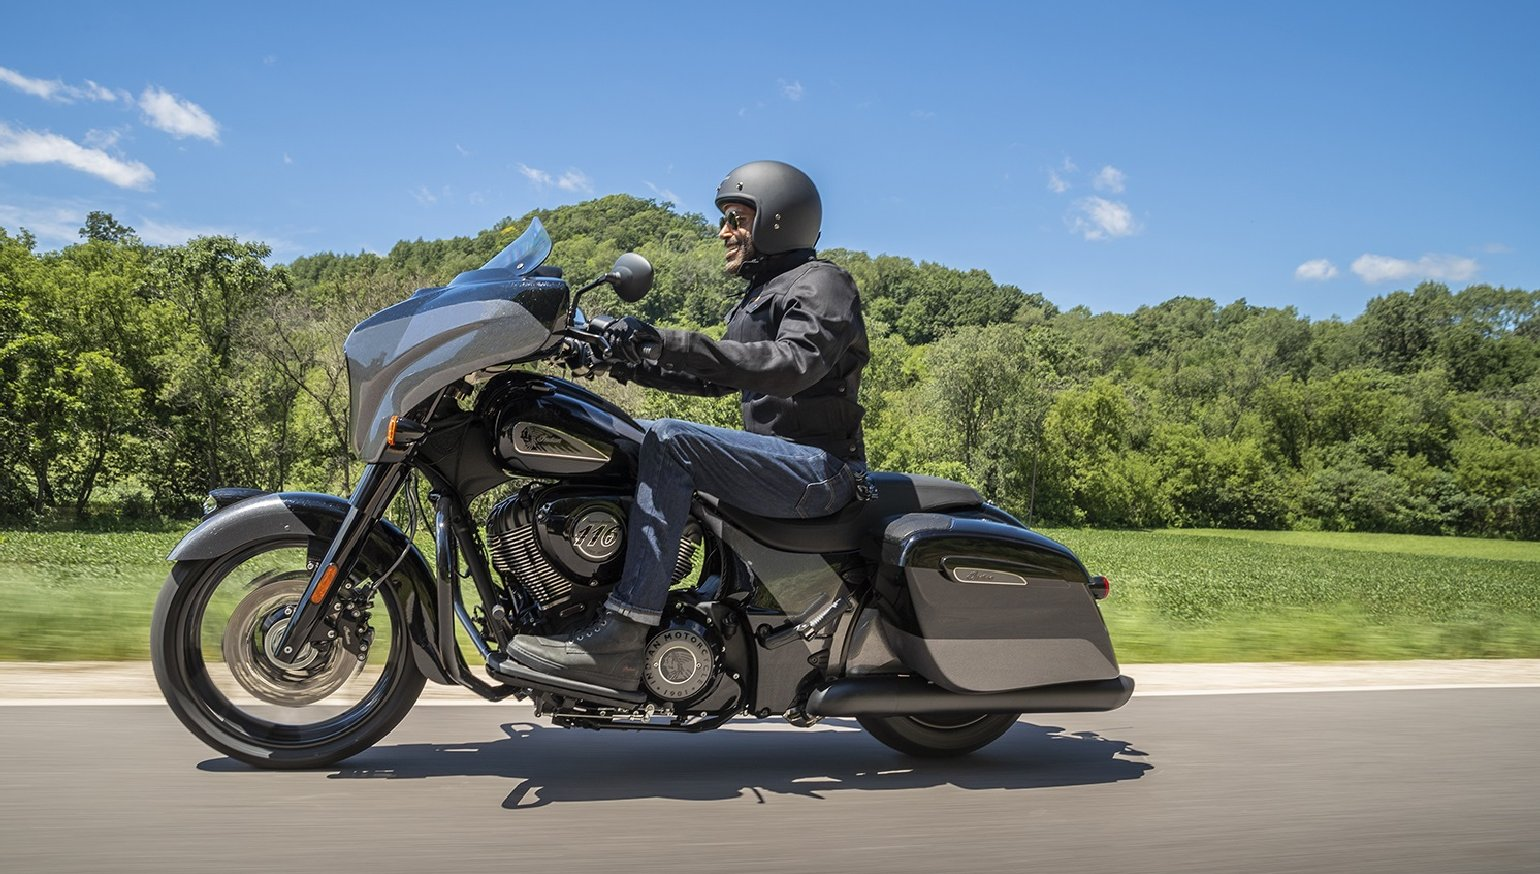 2021 Indian Chieftain Elite first look